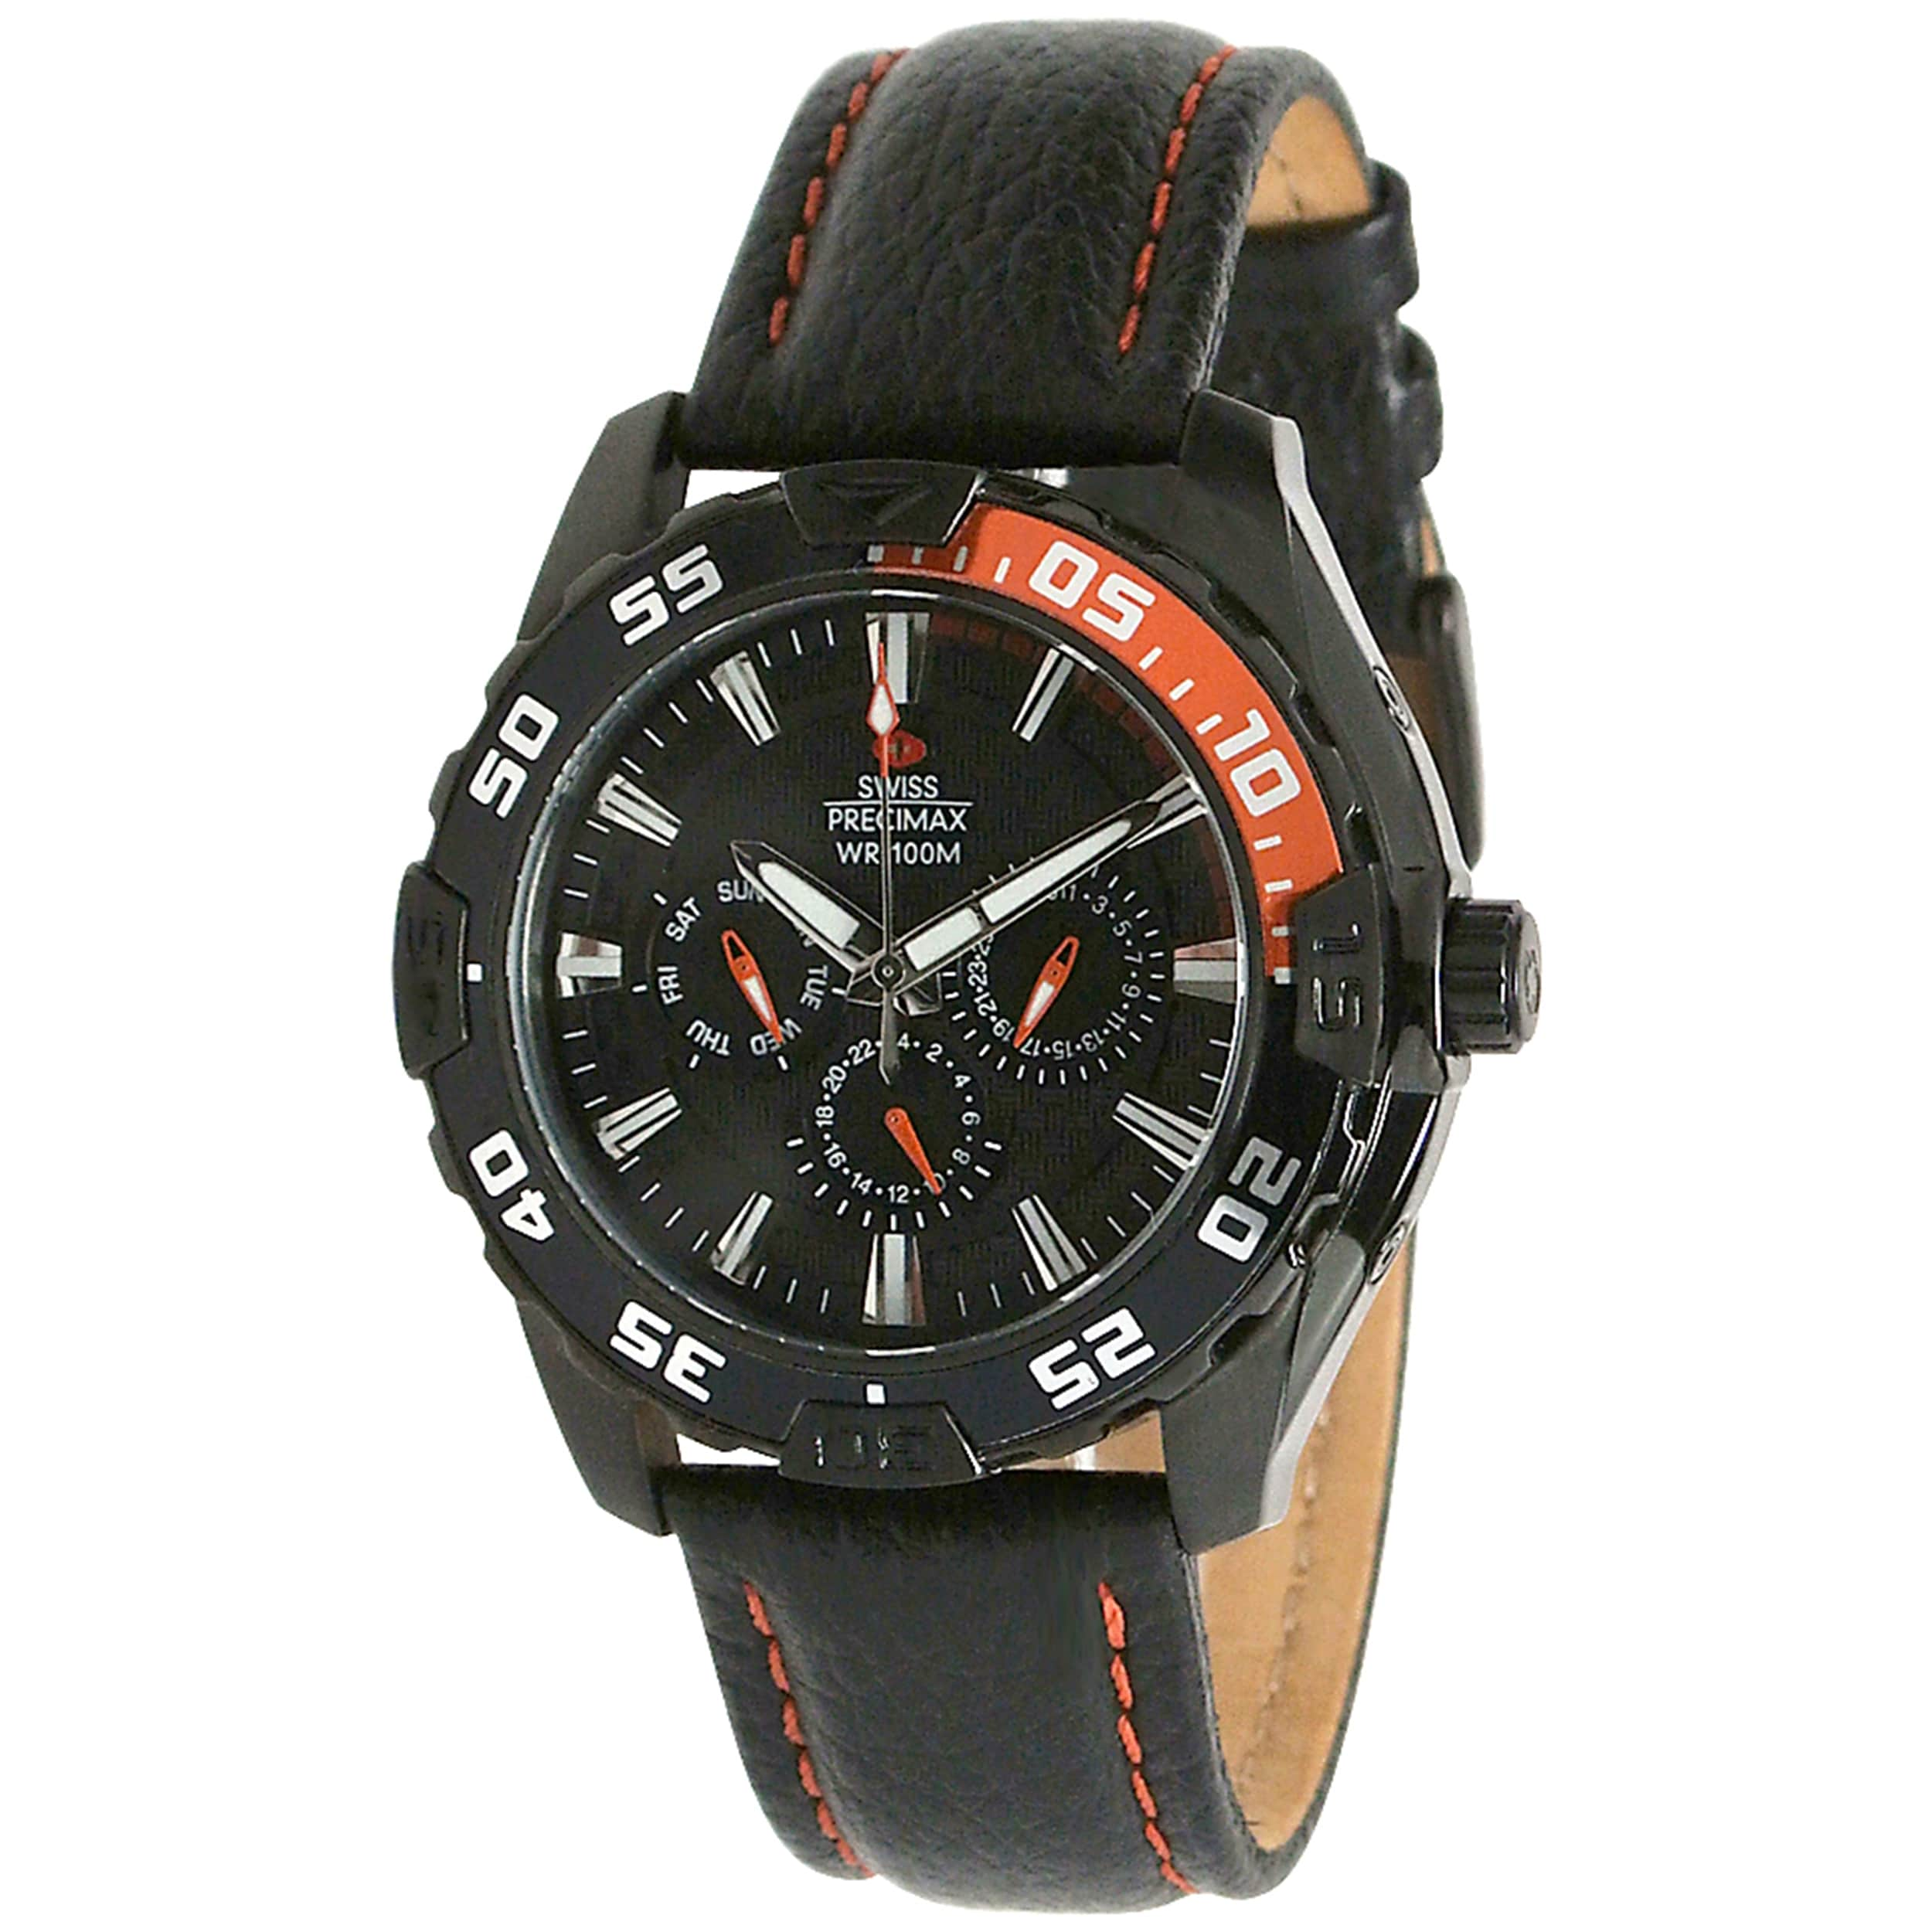 Swiss Precimax Men's Formula 7 XT Leather Watch